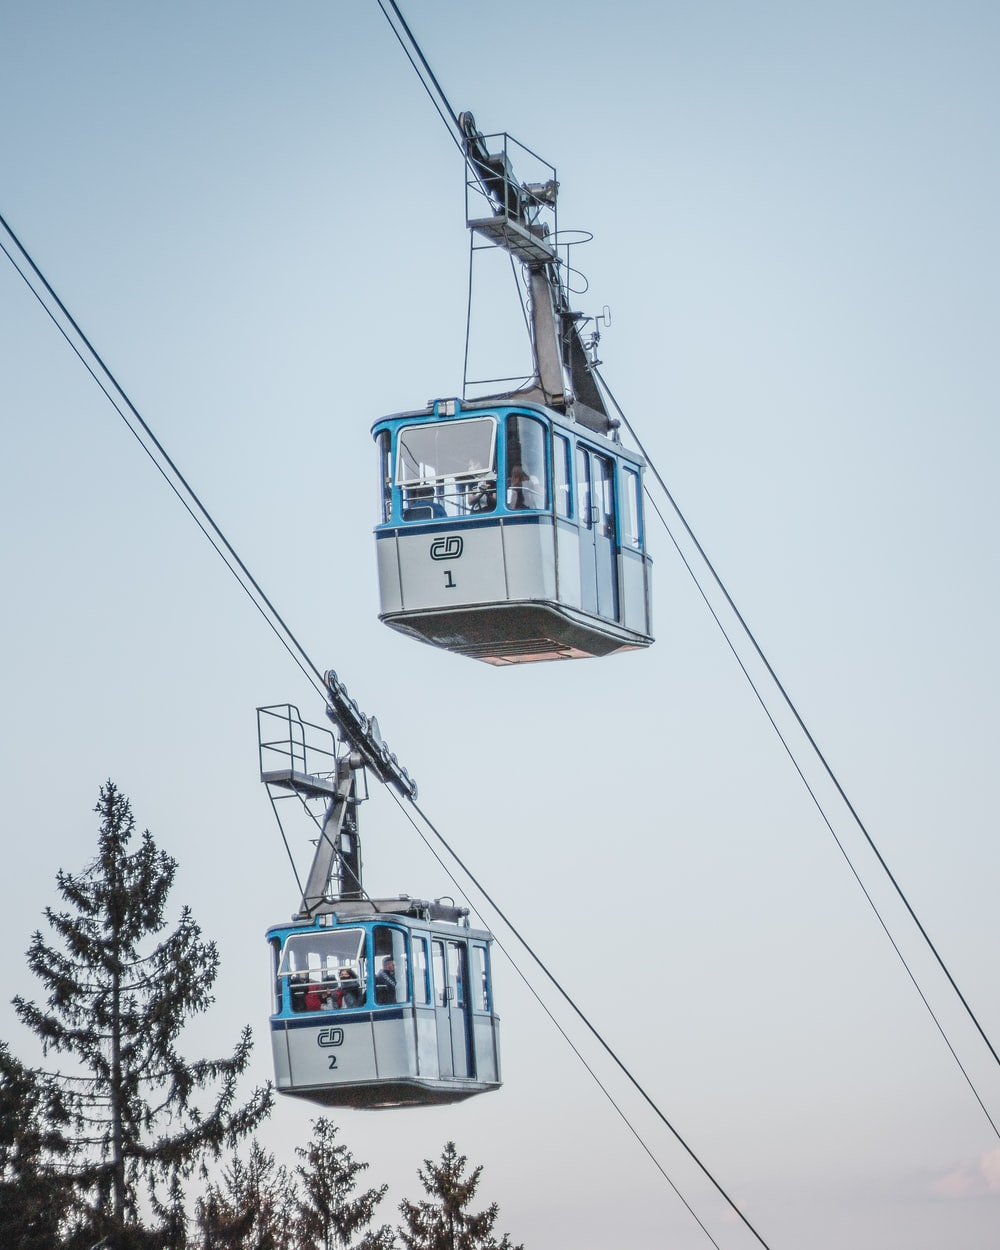 white and blue cable car under white sky